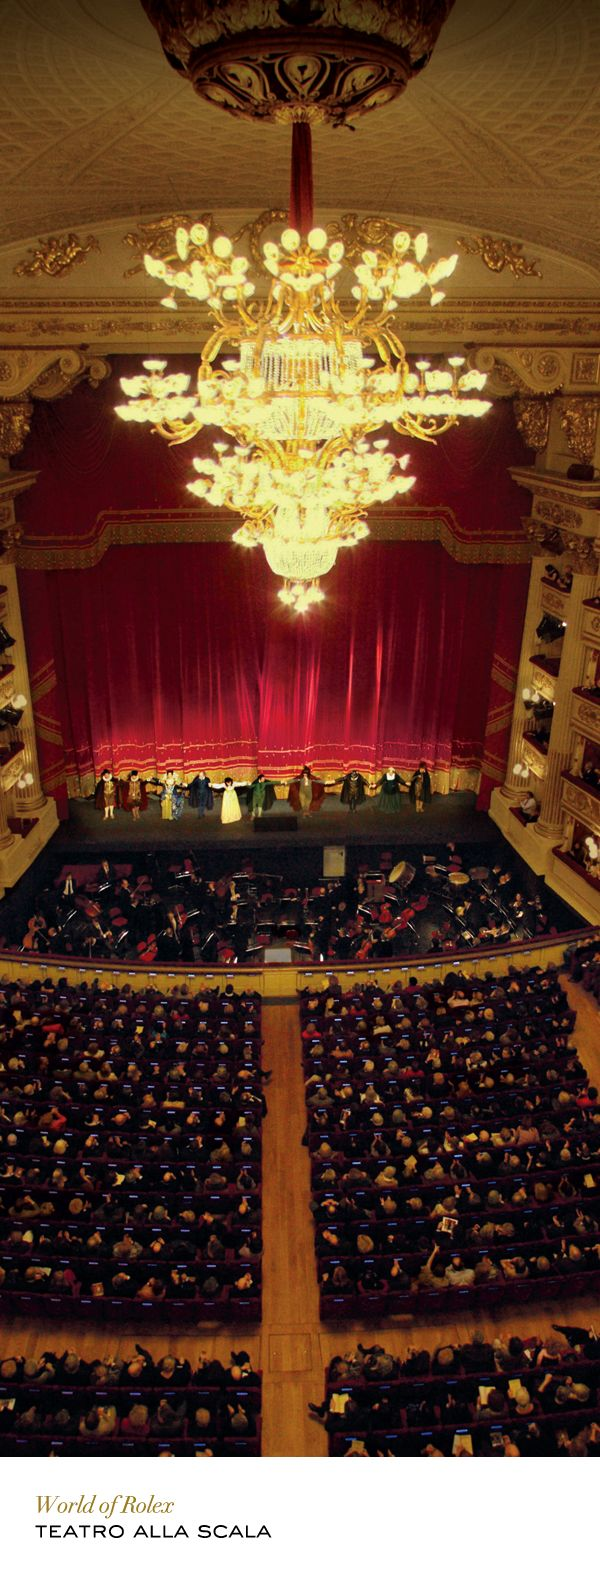 Milan's Teatro alla Scala has been the reference in the opera world for over two centuries.